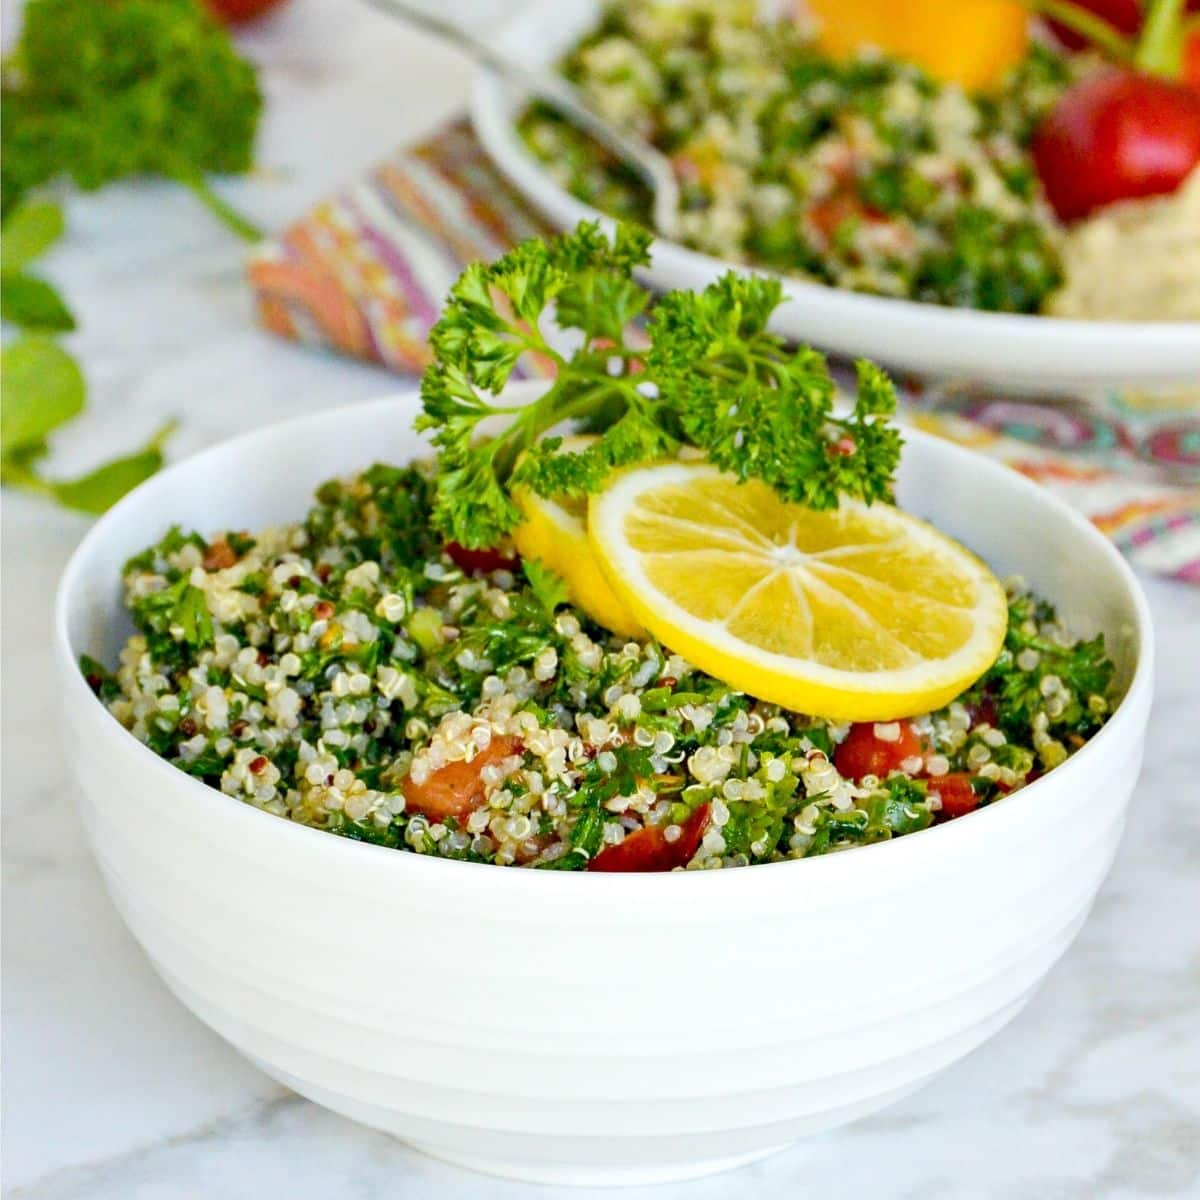 Bowl of quinoa tabbouleh salad garnished with sprig of parsley and slices or lemon